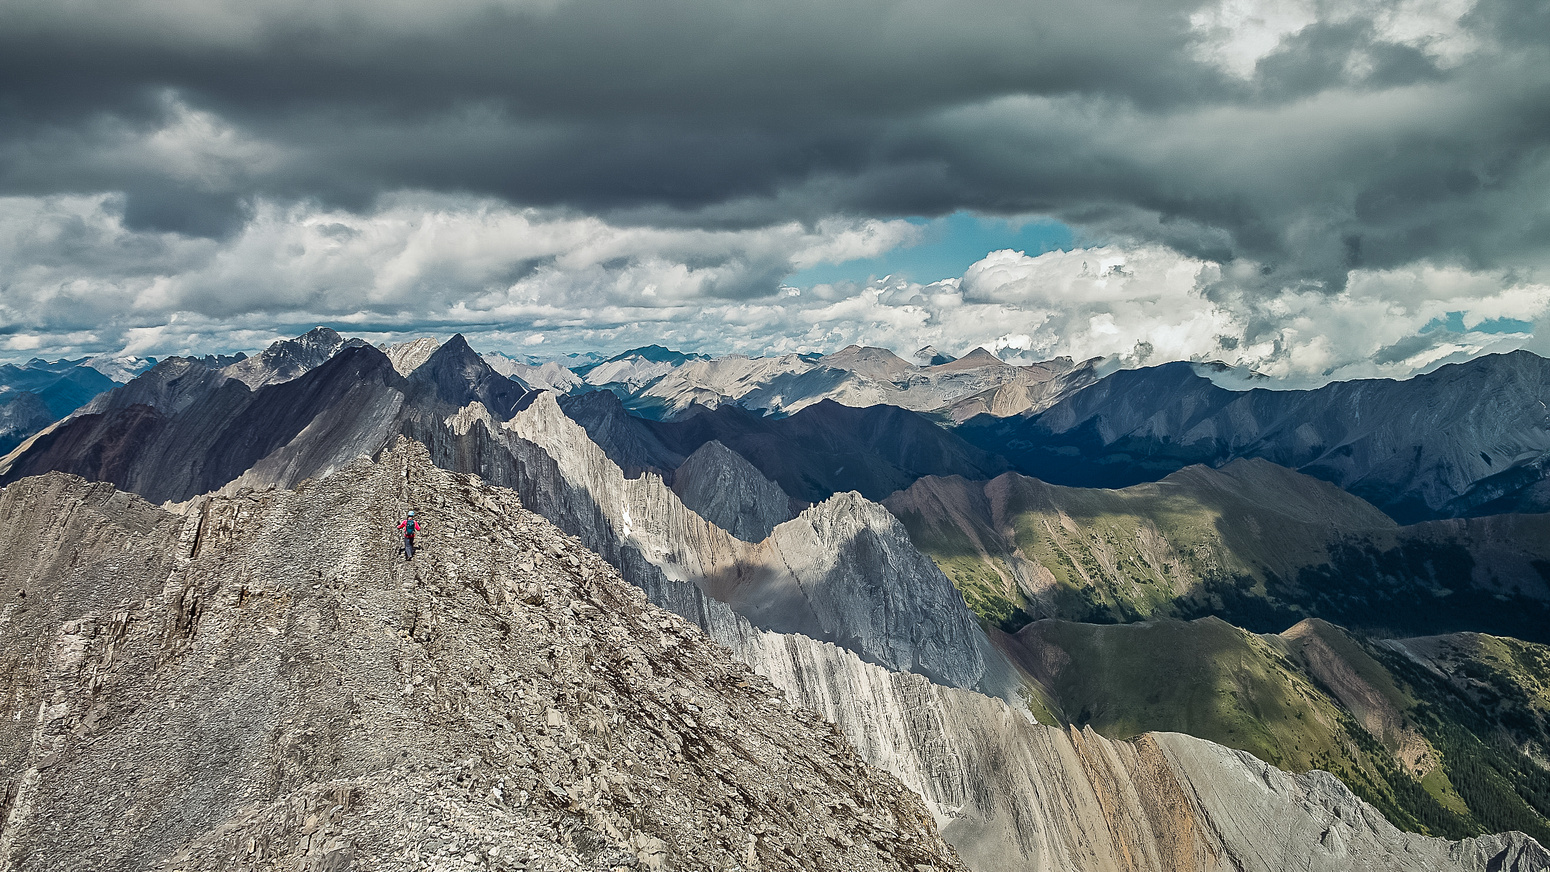 The ridge was wide in places with incredible views in all directions.